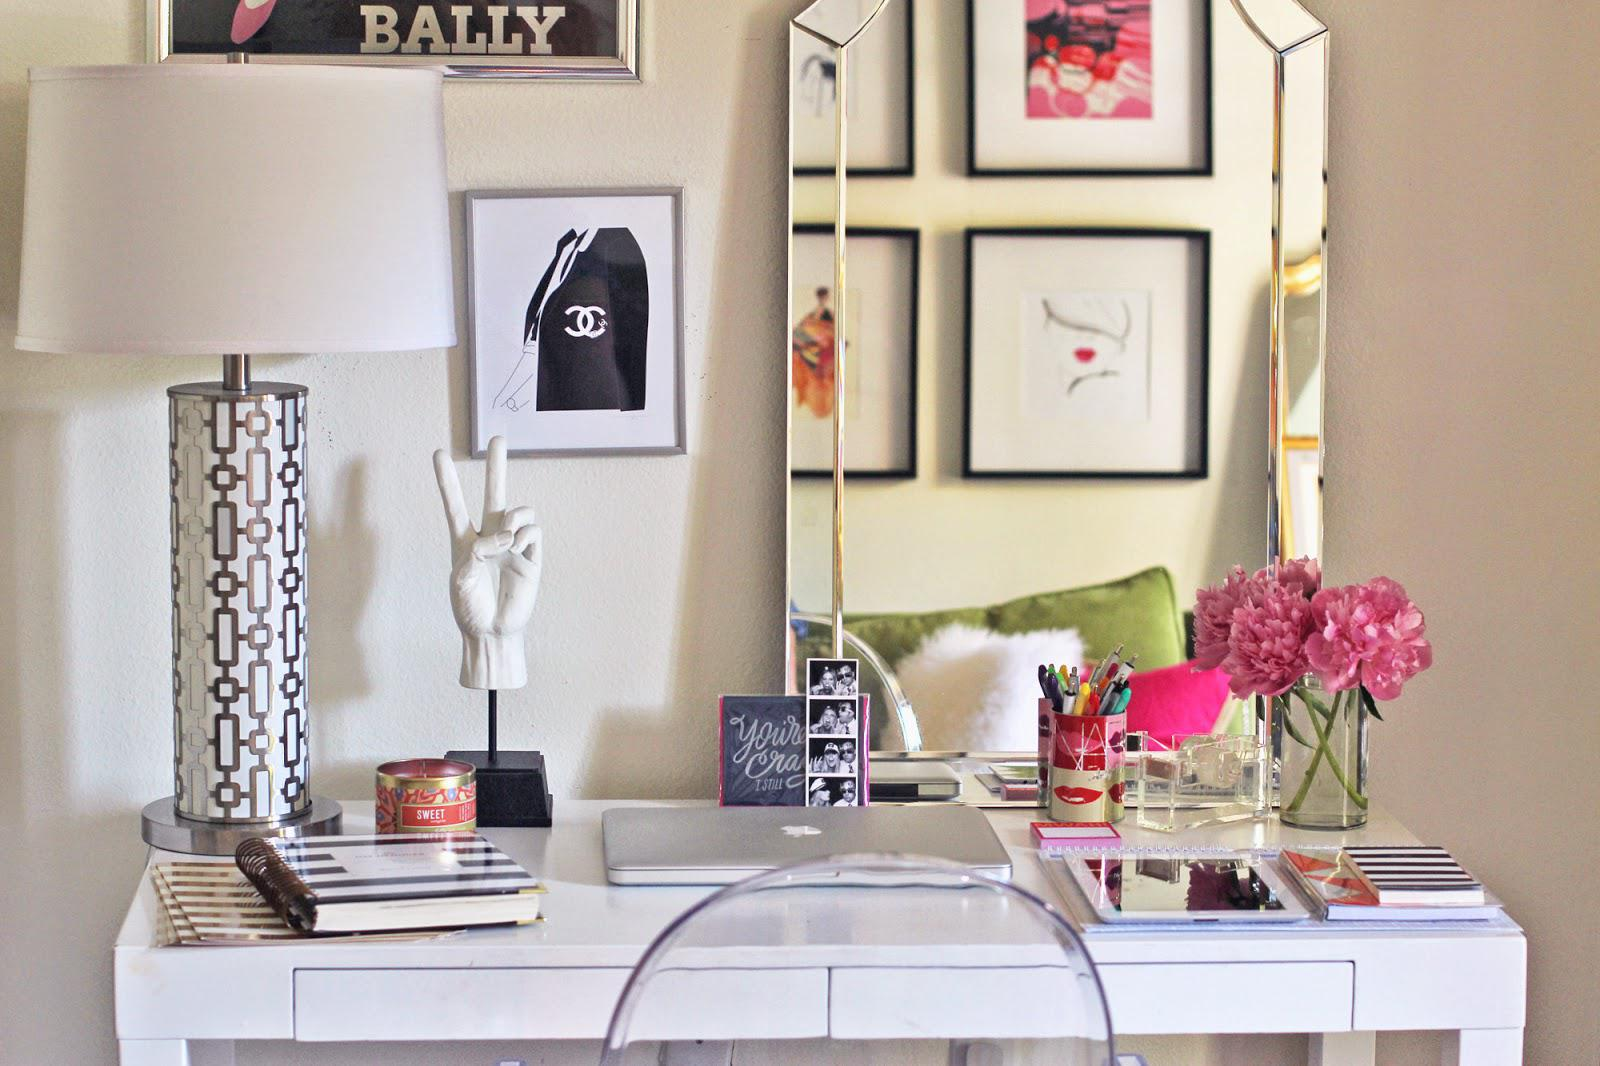 Cute Home Office Ideas: Give Your Desk A Makeover With These 7 Cute Ideas